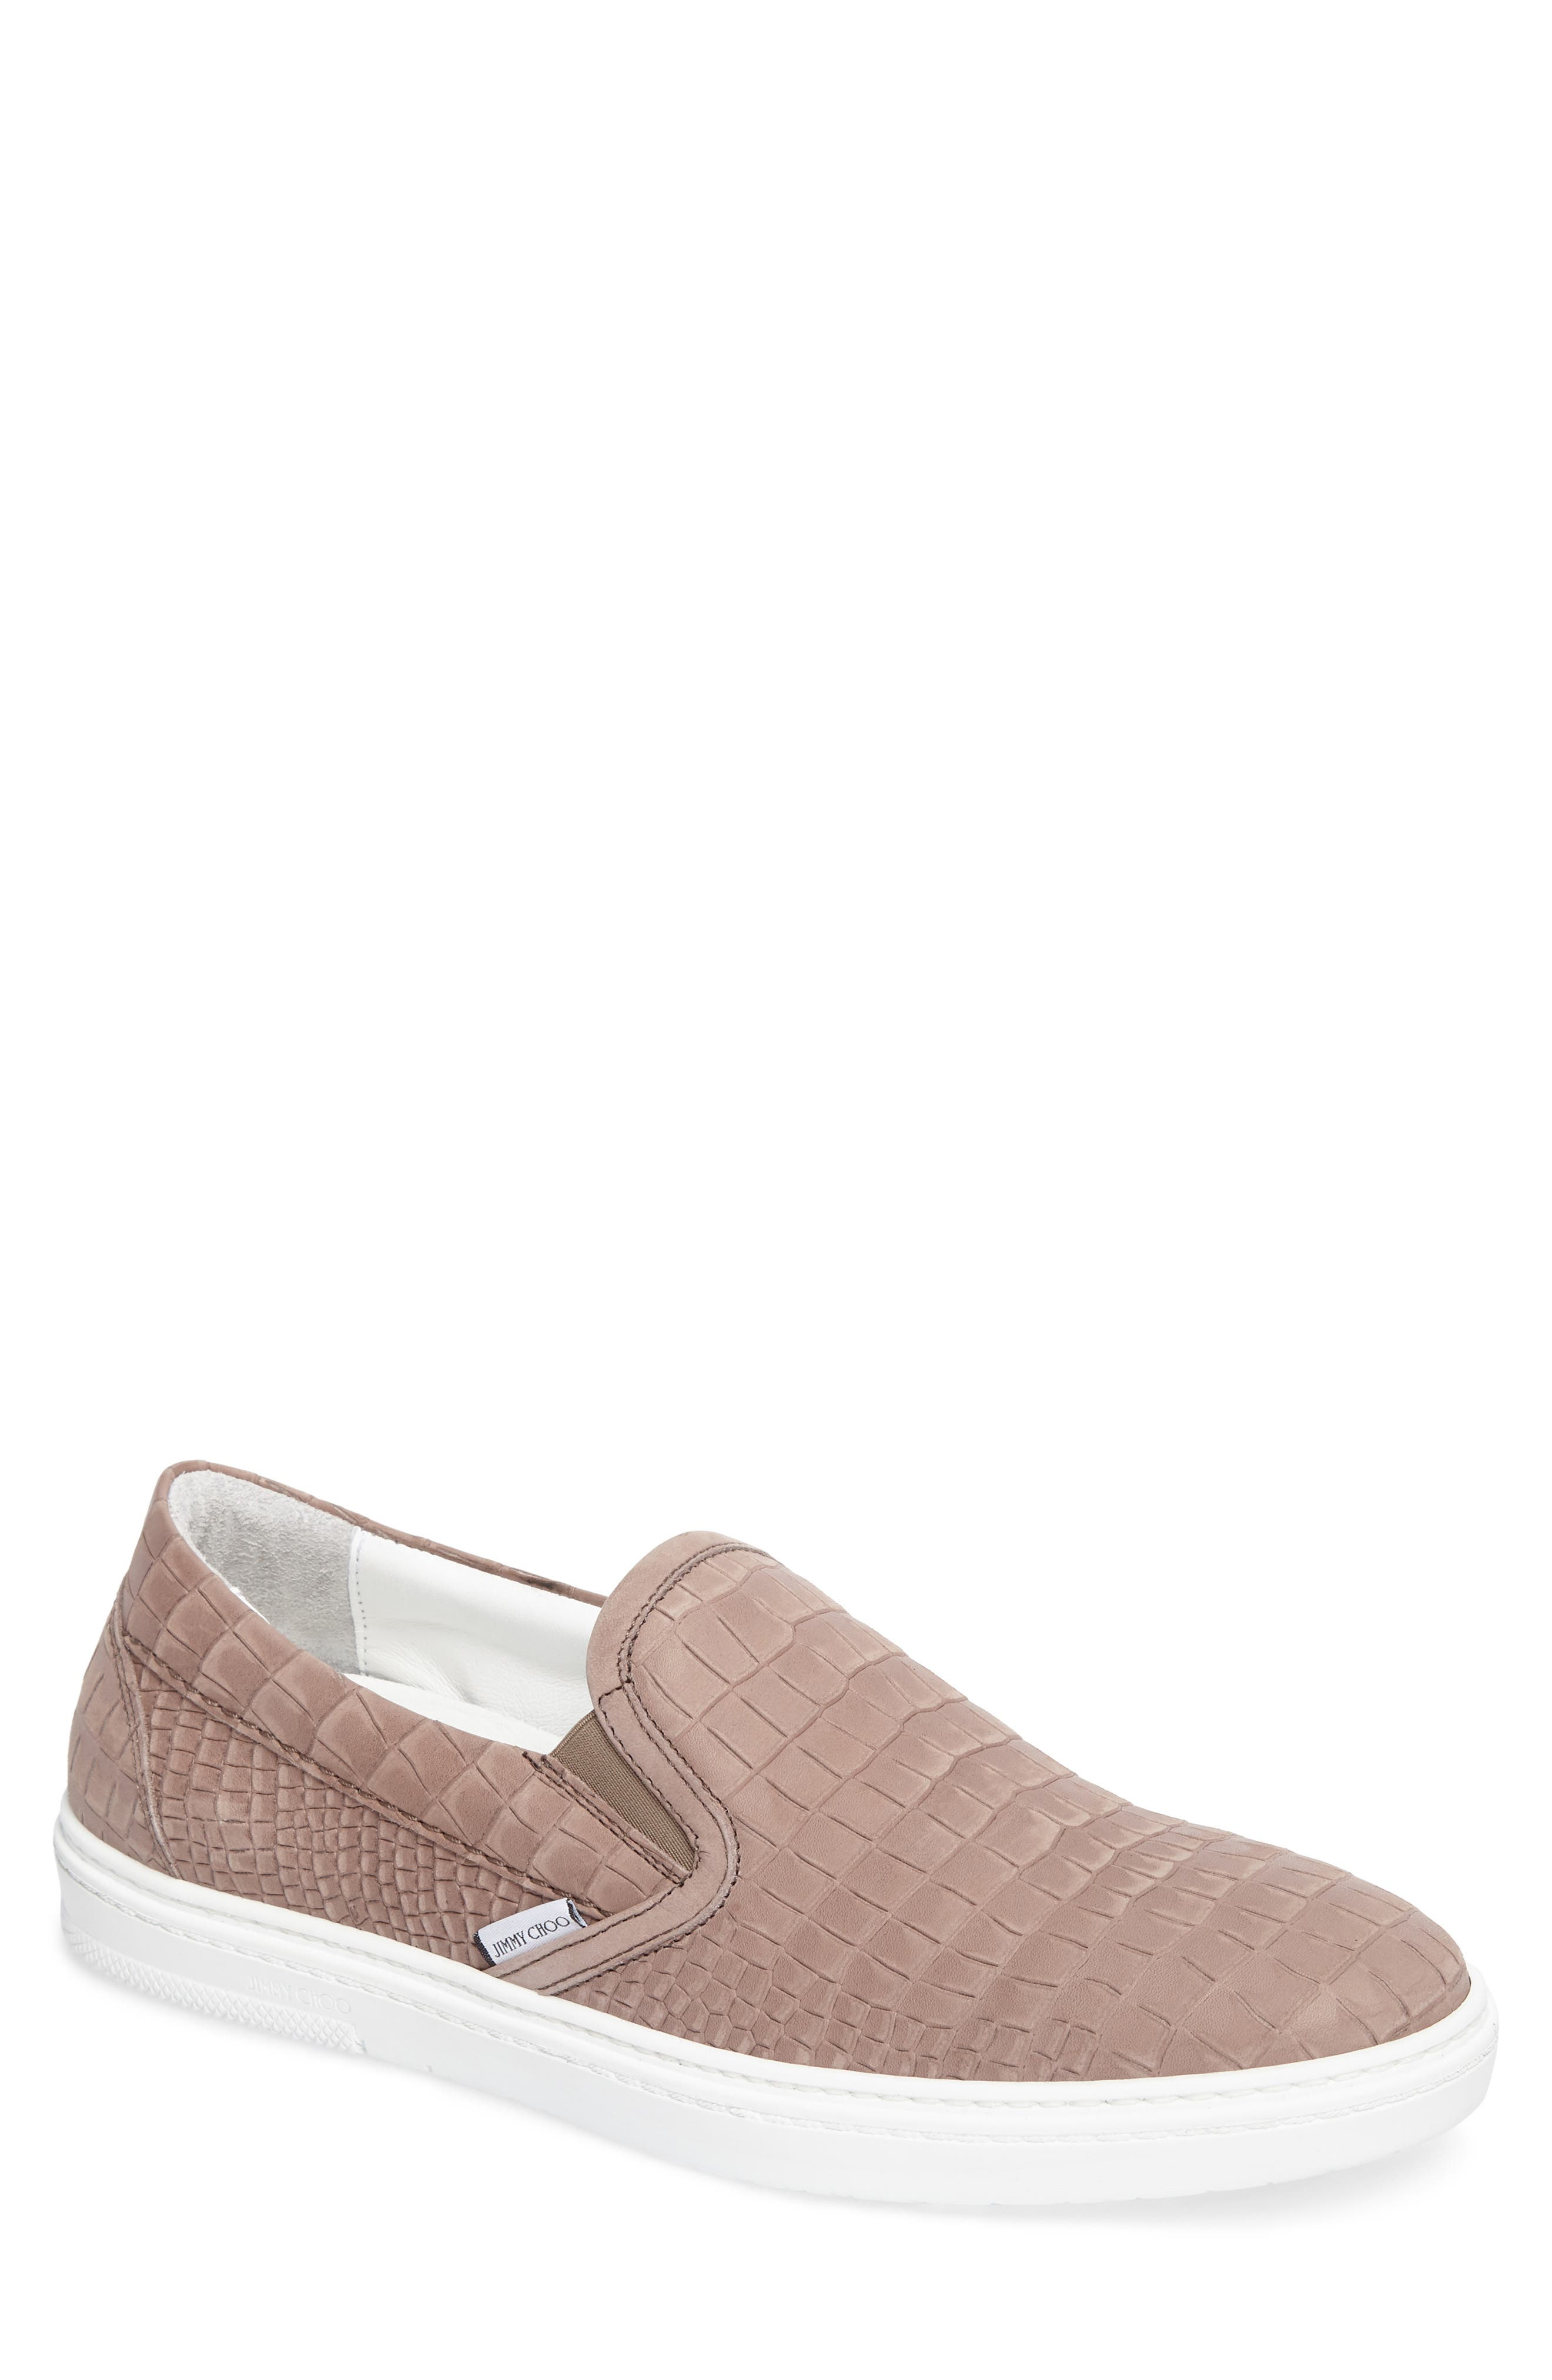 Slip-On Sneaker,                             Main thumbnail 1, color,